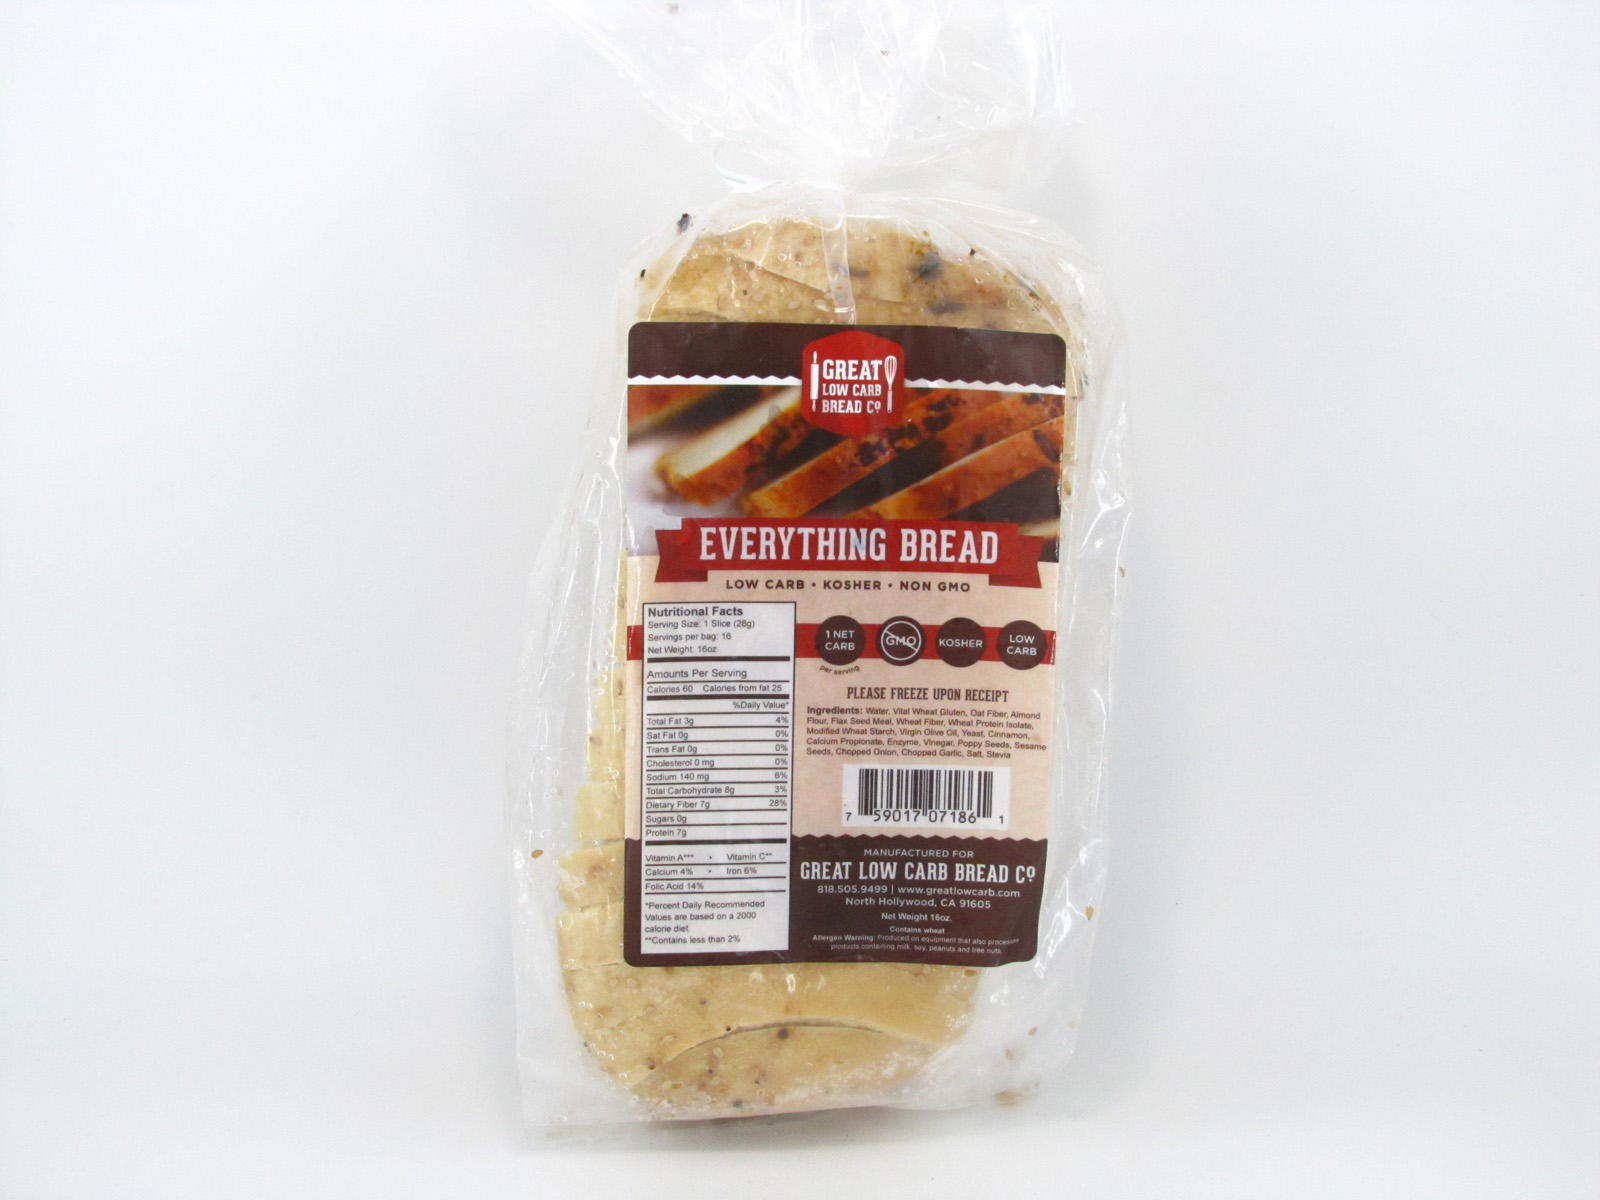 Great Low Carb Bread - Everything - front view